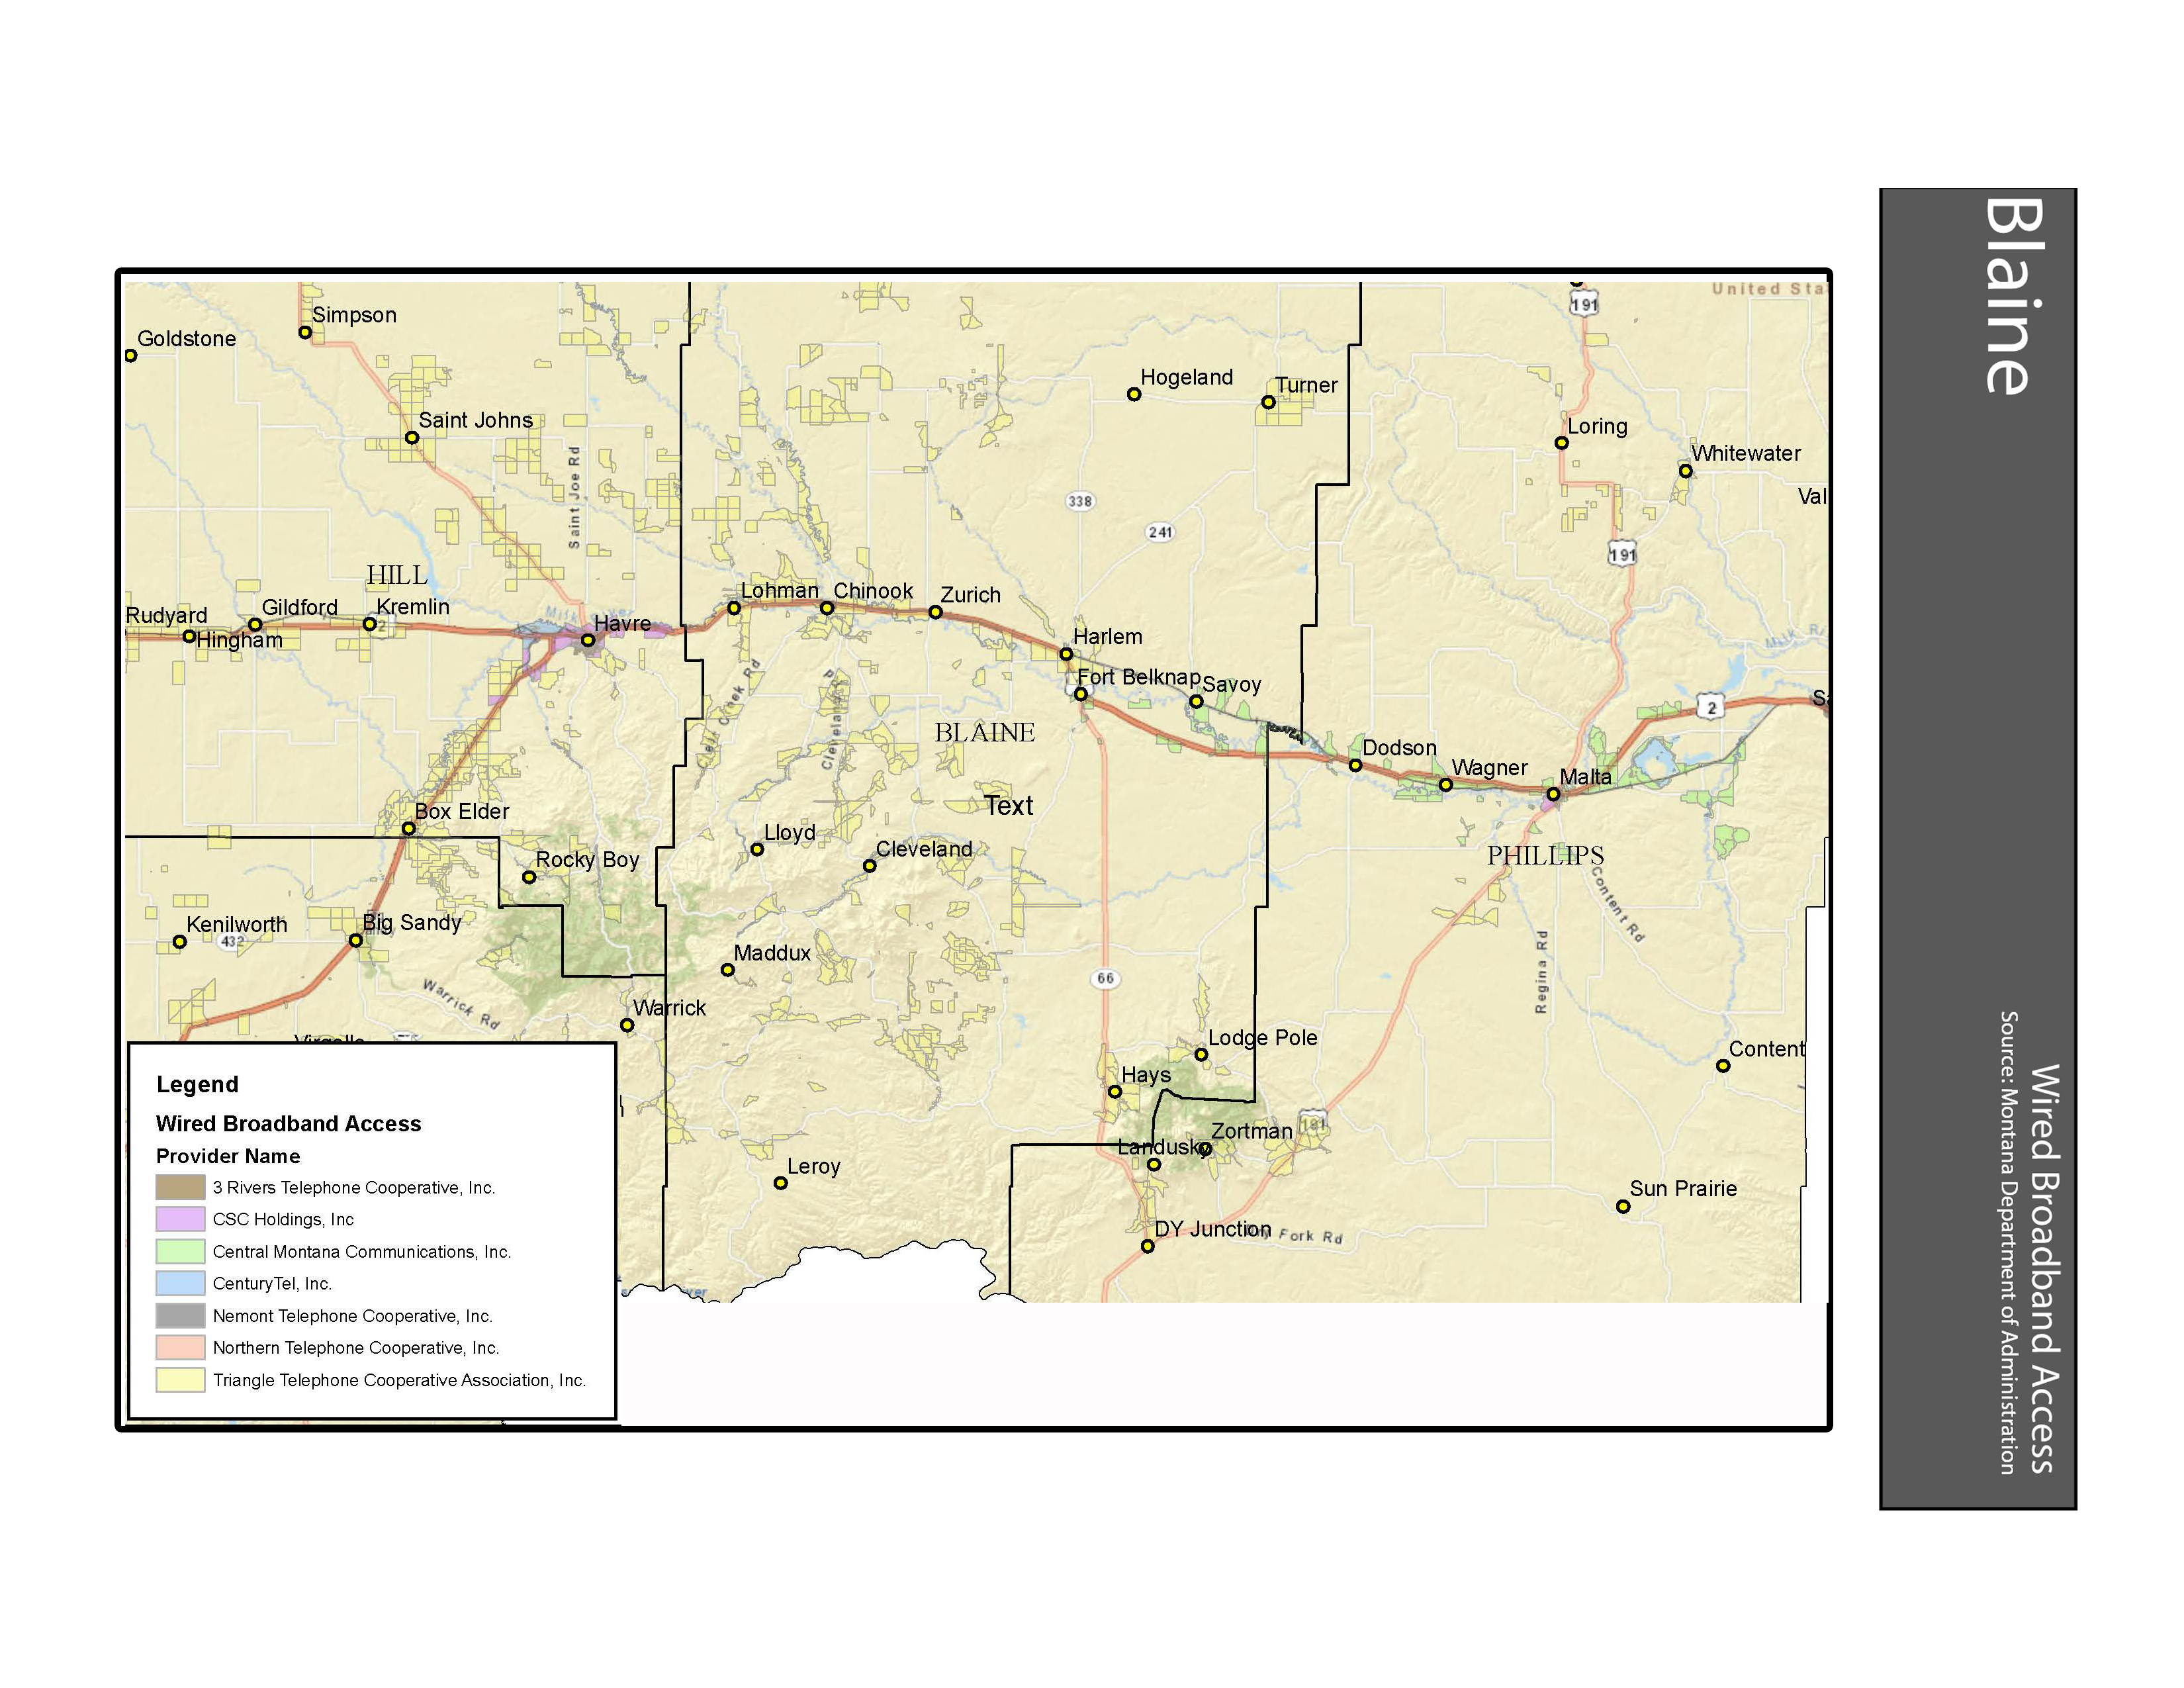 Montana blaine county hays - Wired Broadband Access Blaine County